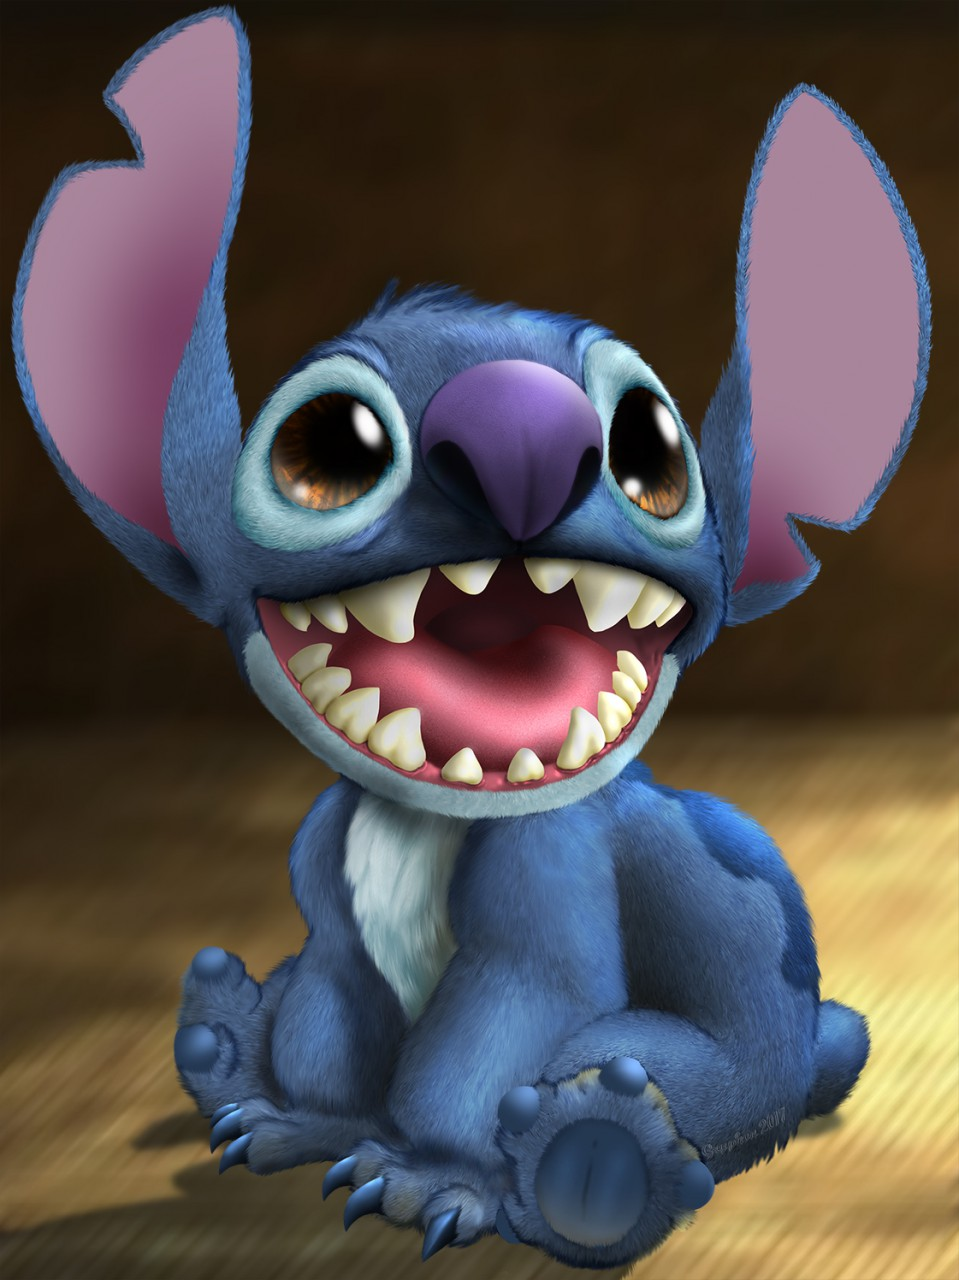 Most recent image: Stitch